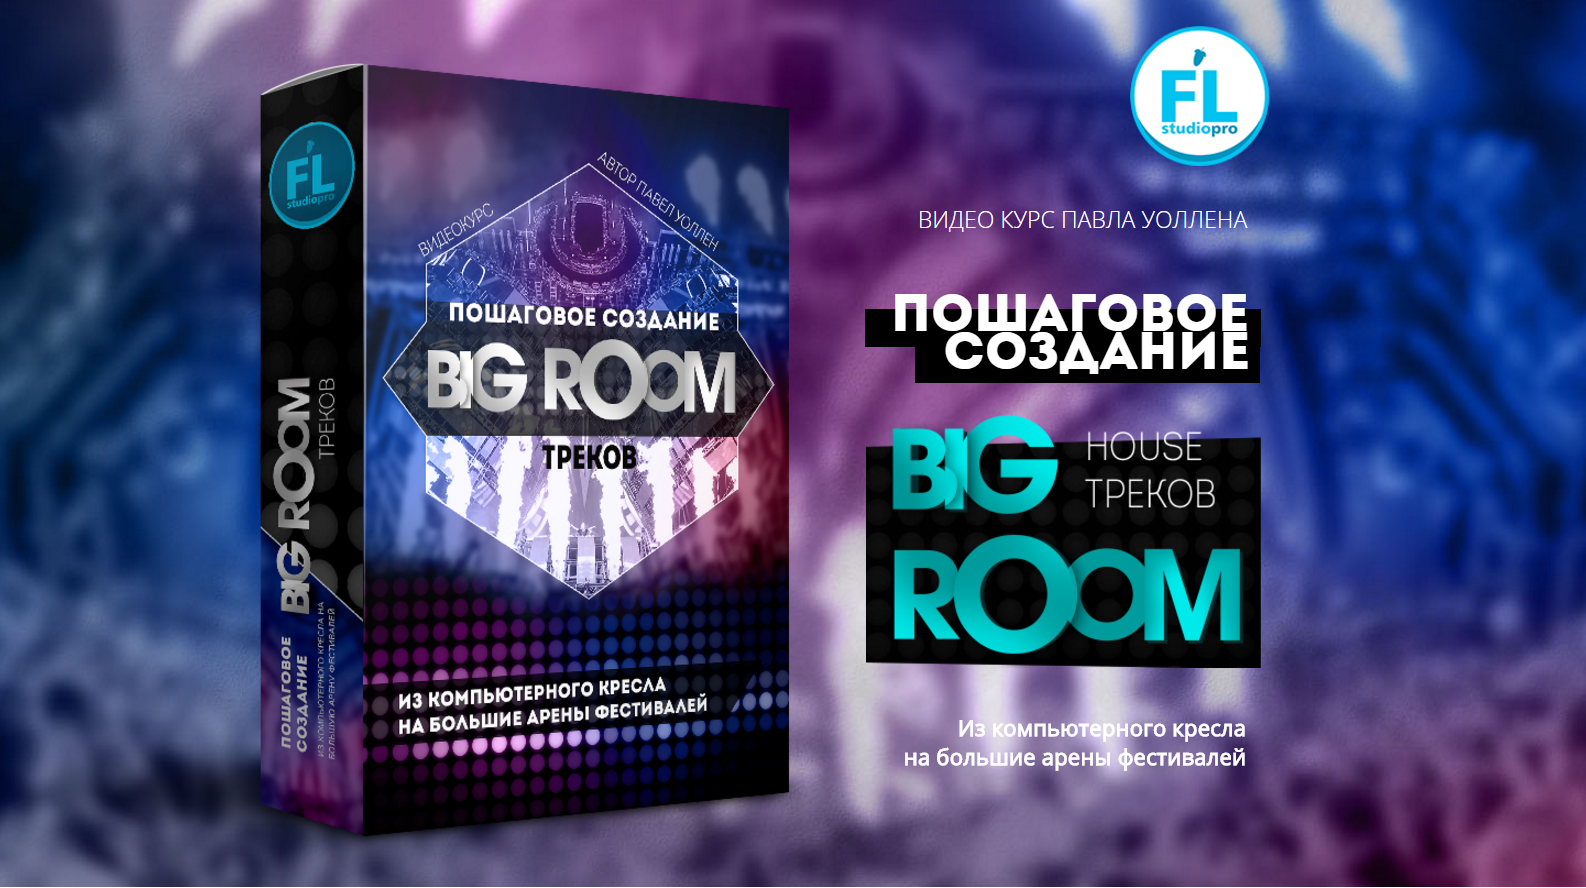 Пошаговое создание Big Room House треков с нуля